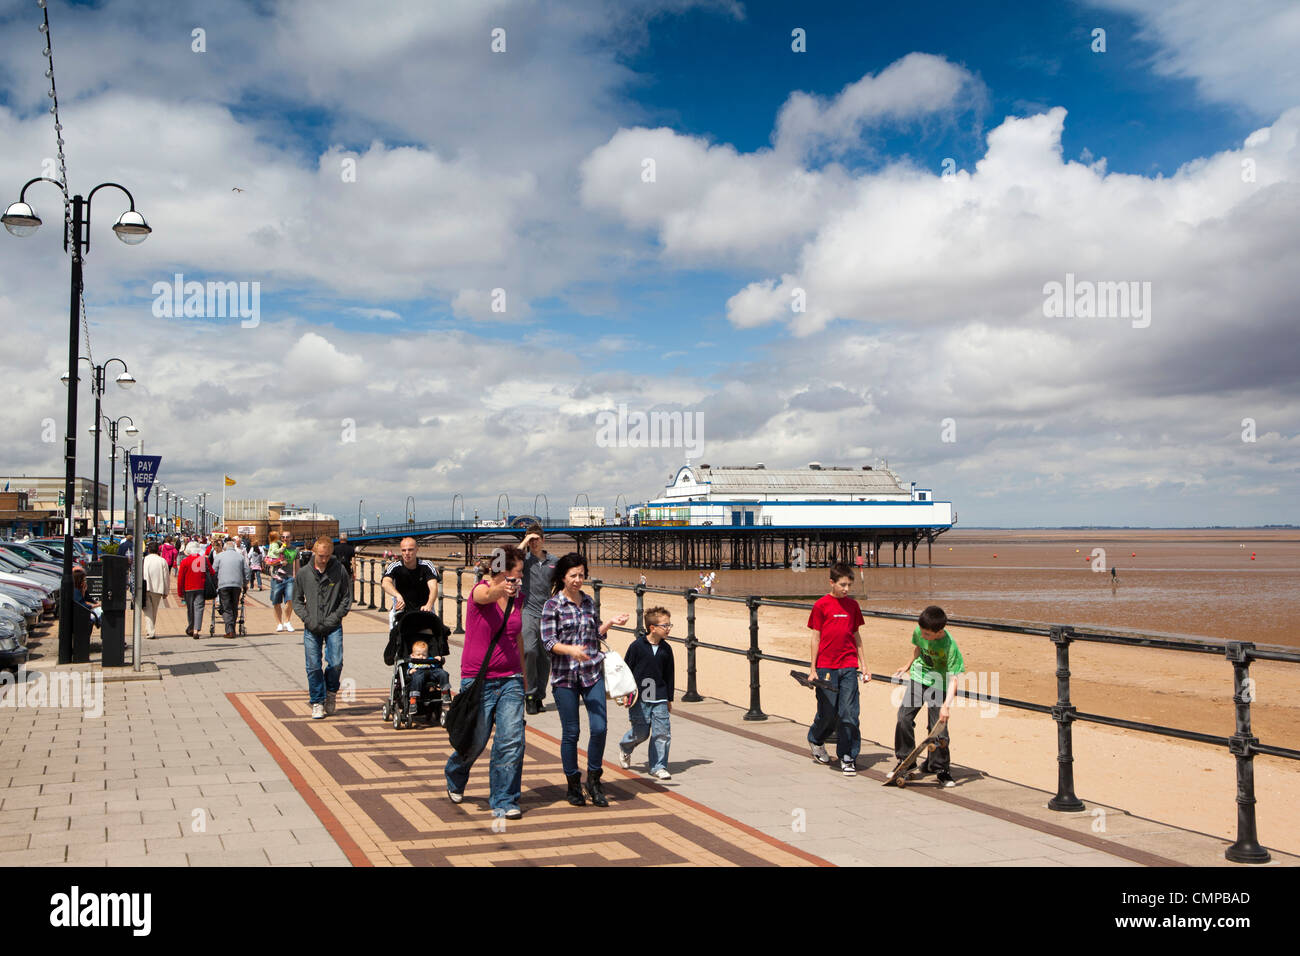 UK, England, Lincolnshire, Cleethorpes, visitors walking on promenade in summer sunshine - Stock Image